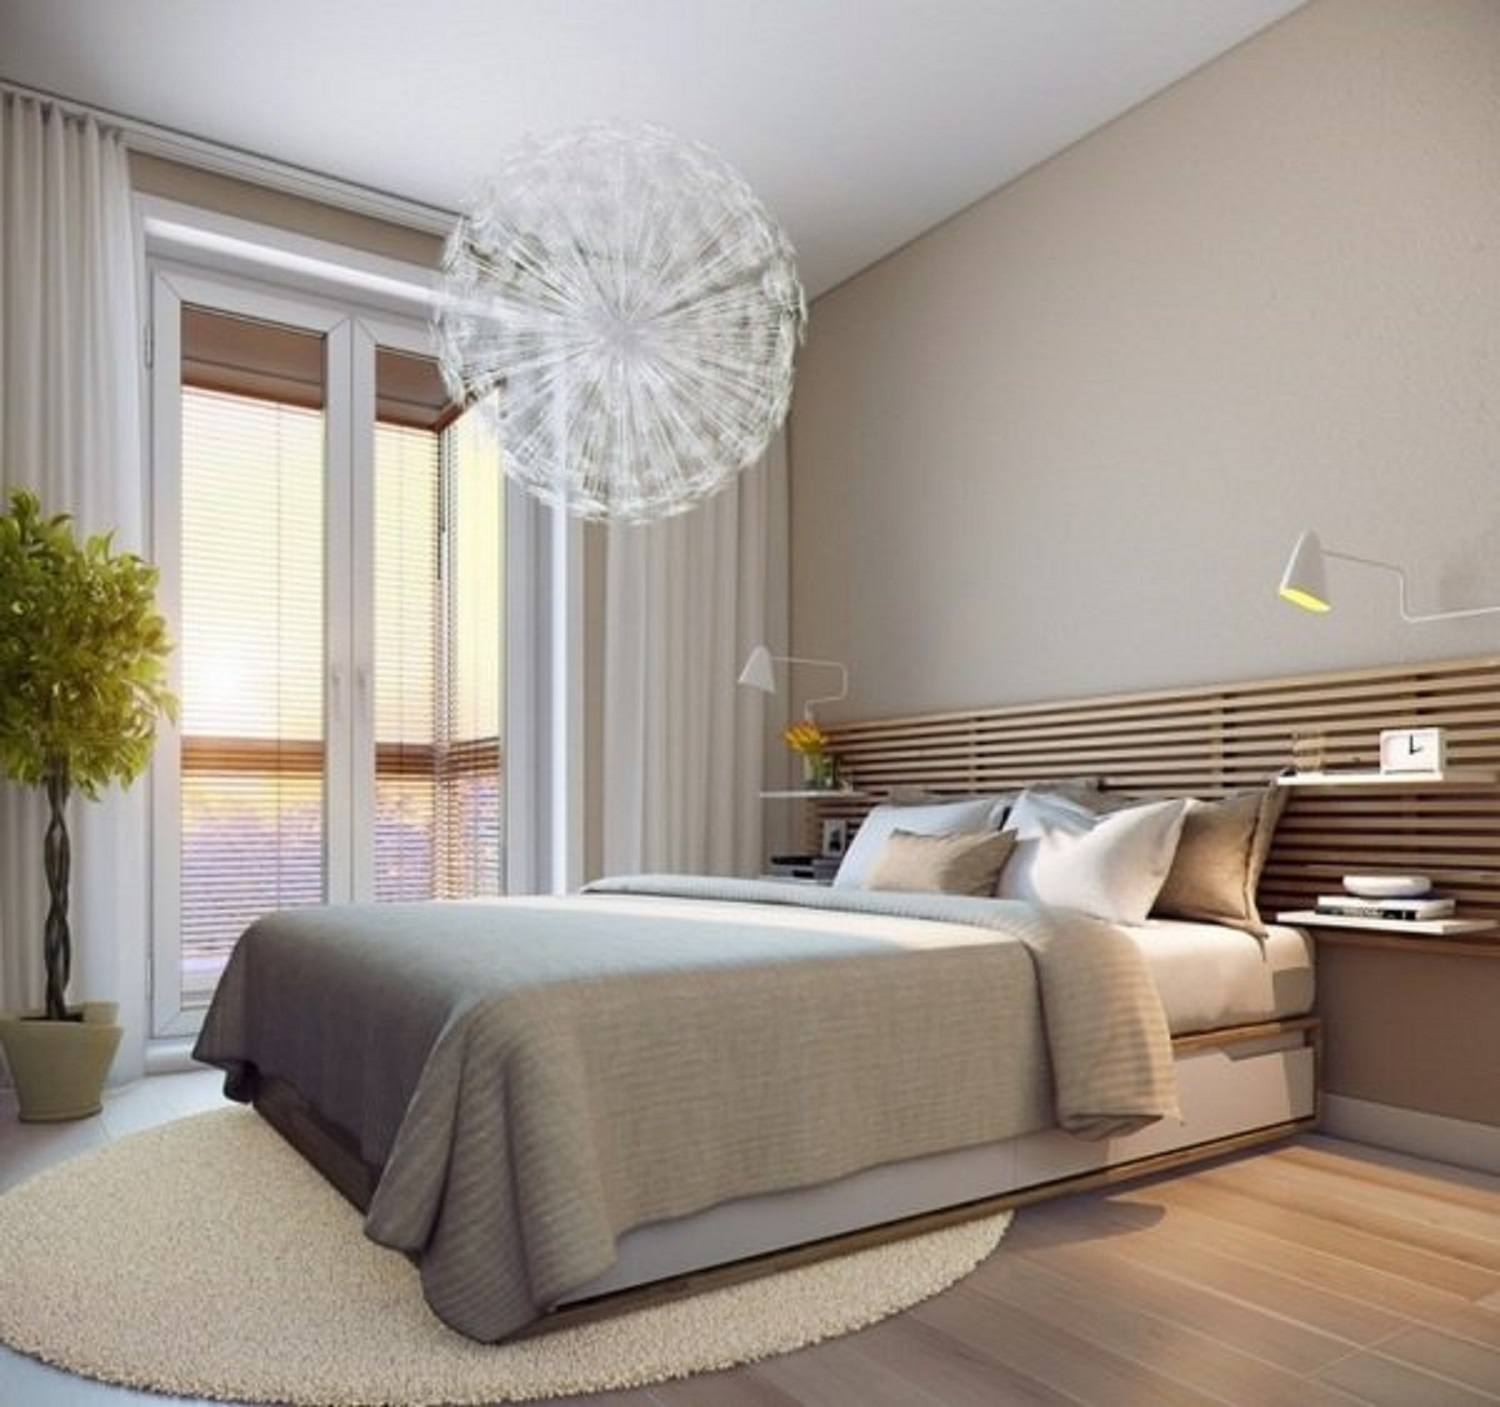 . 25 Tips and Photos for Decorating a Modern Master Bedroom